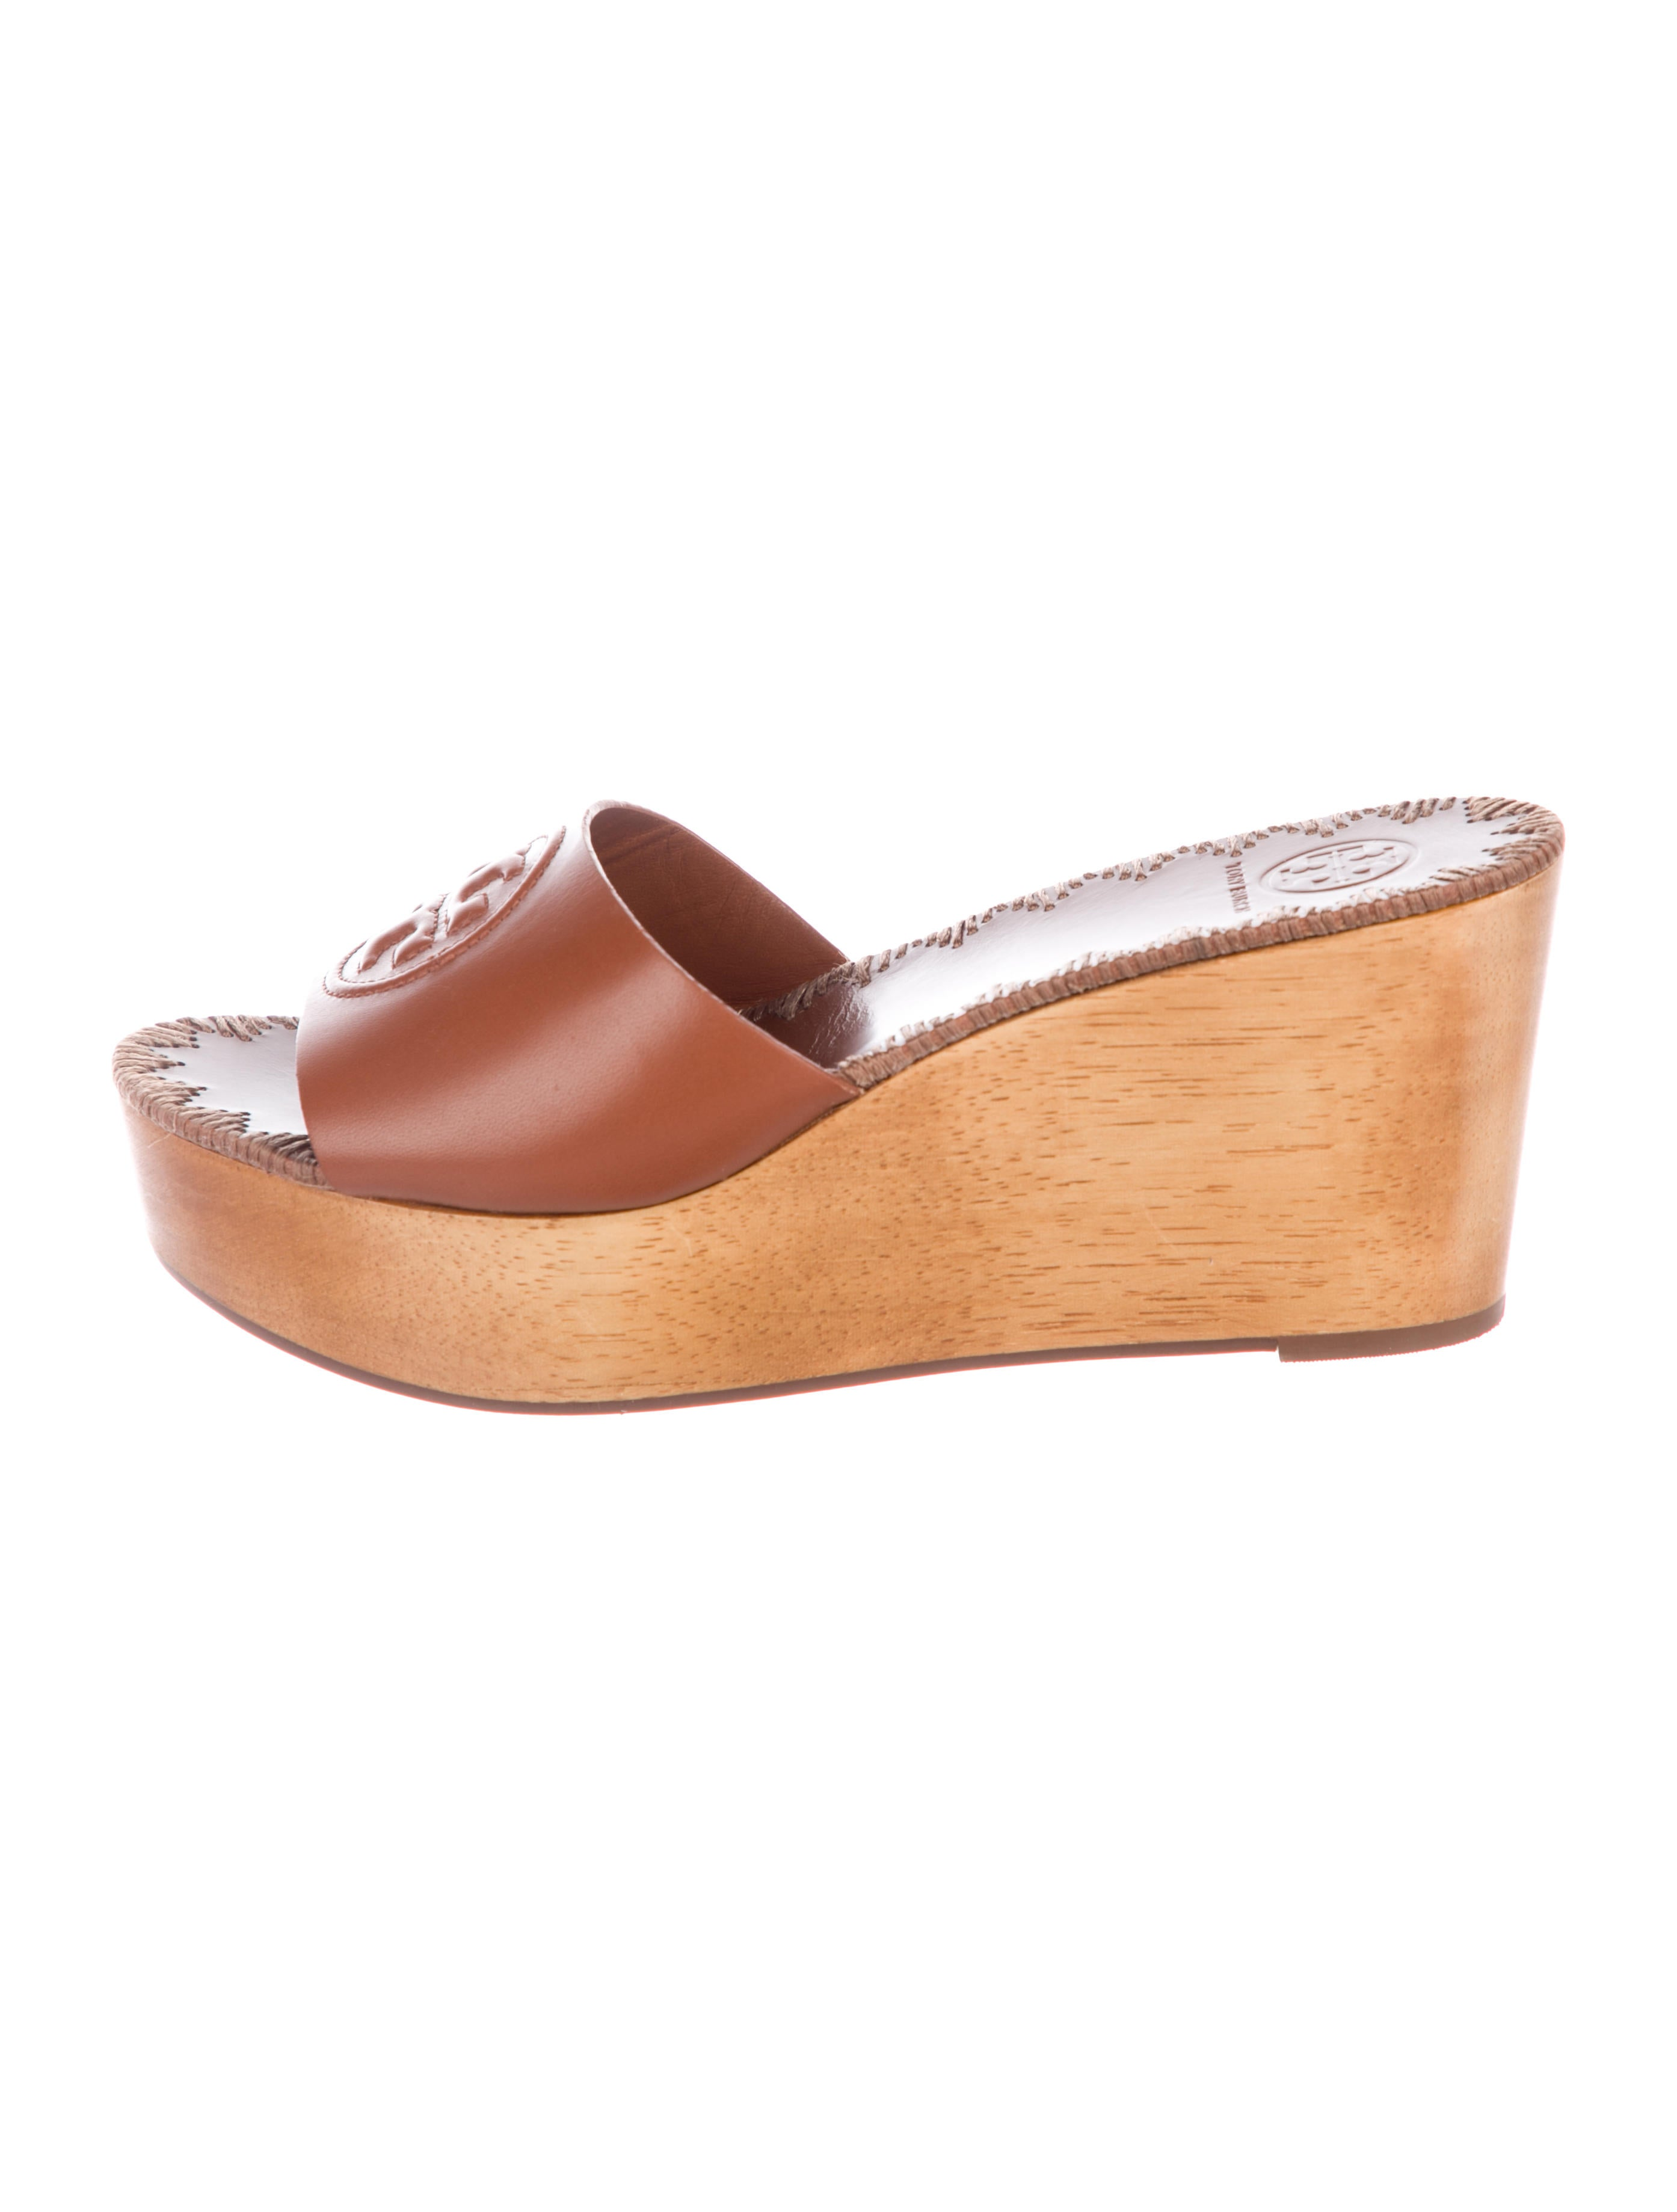 3965bd5be86a4 Tory Burch Patty Wedge Sandals w/ Tags - Shoes - WTO160977 | The ...